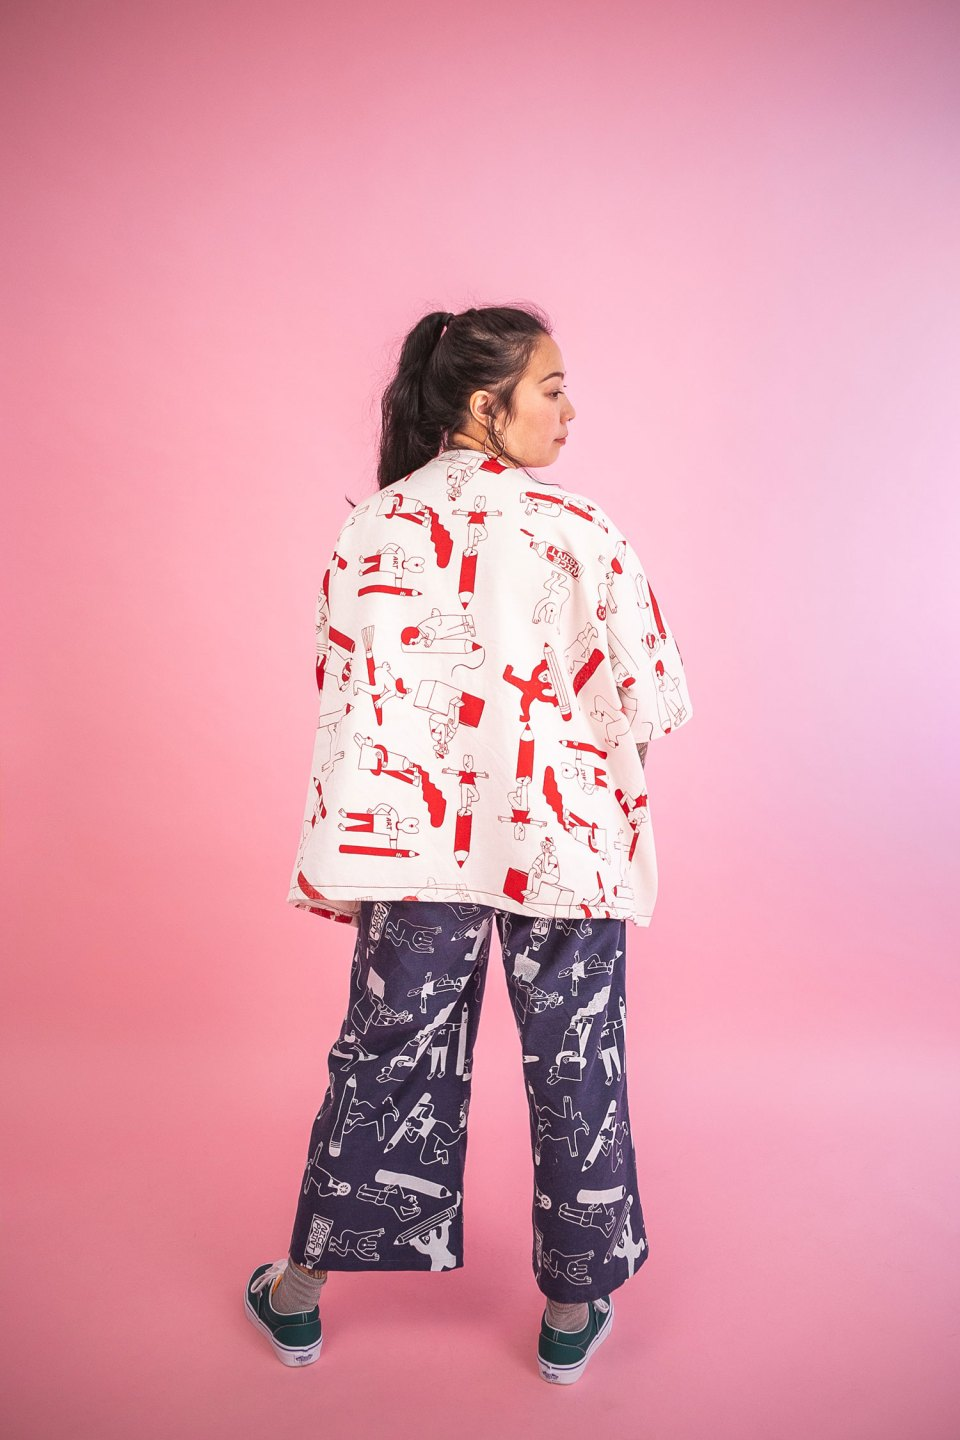 Mix n match YUK FUN Artist Suit: Becky wears a red on natural print jacket with our denim print trousers